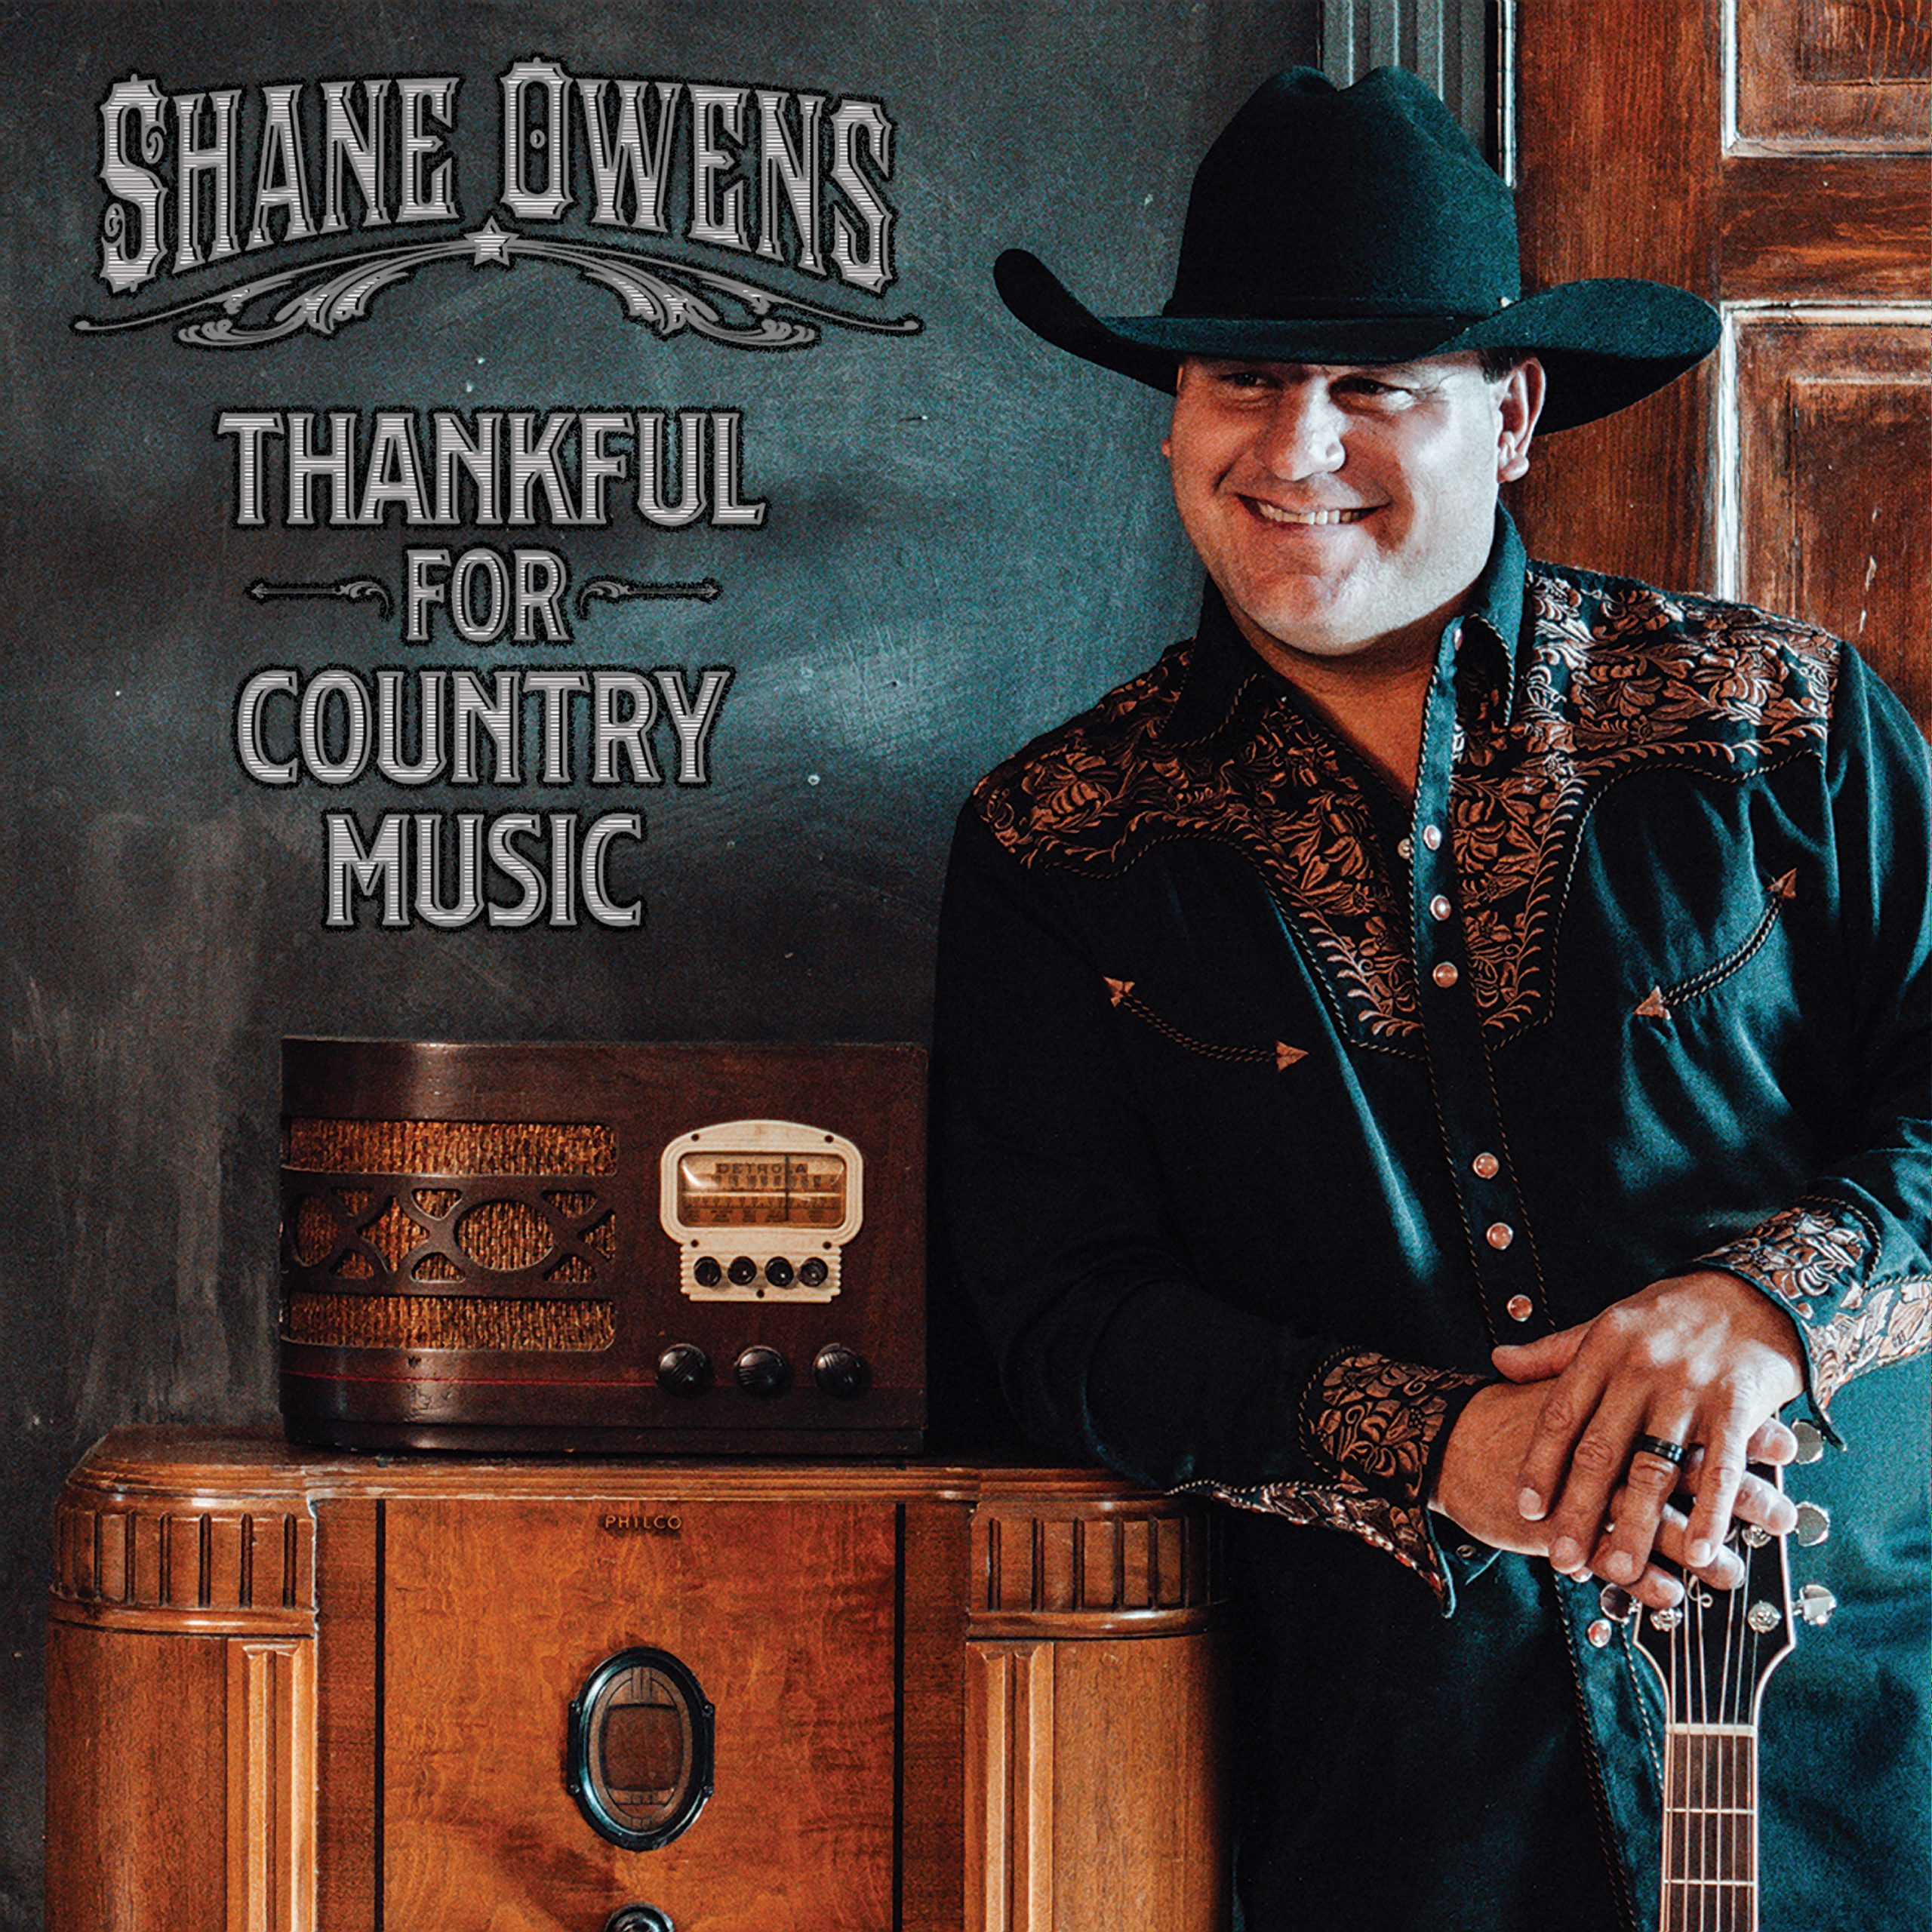 Shane-Owens-Thankful-For-Country-Music-Album-Art-LRG-scaled-1